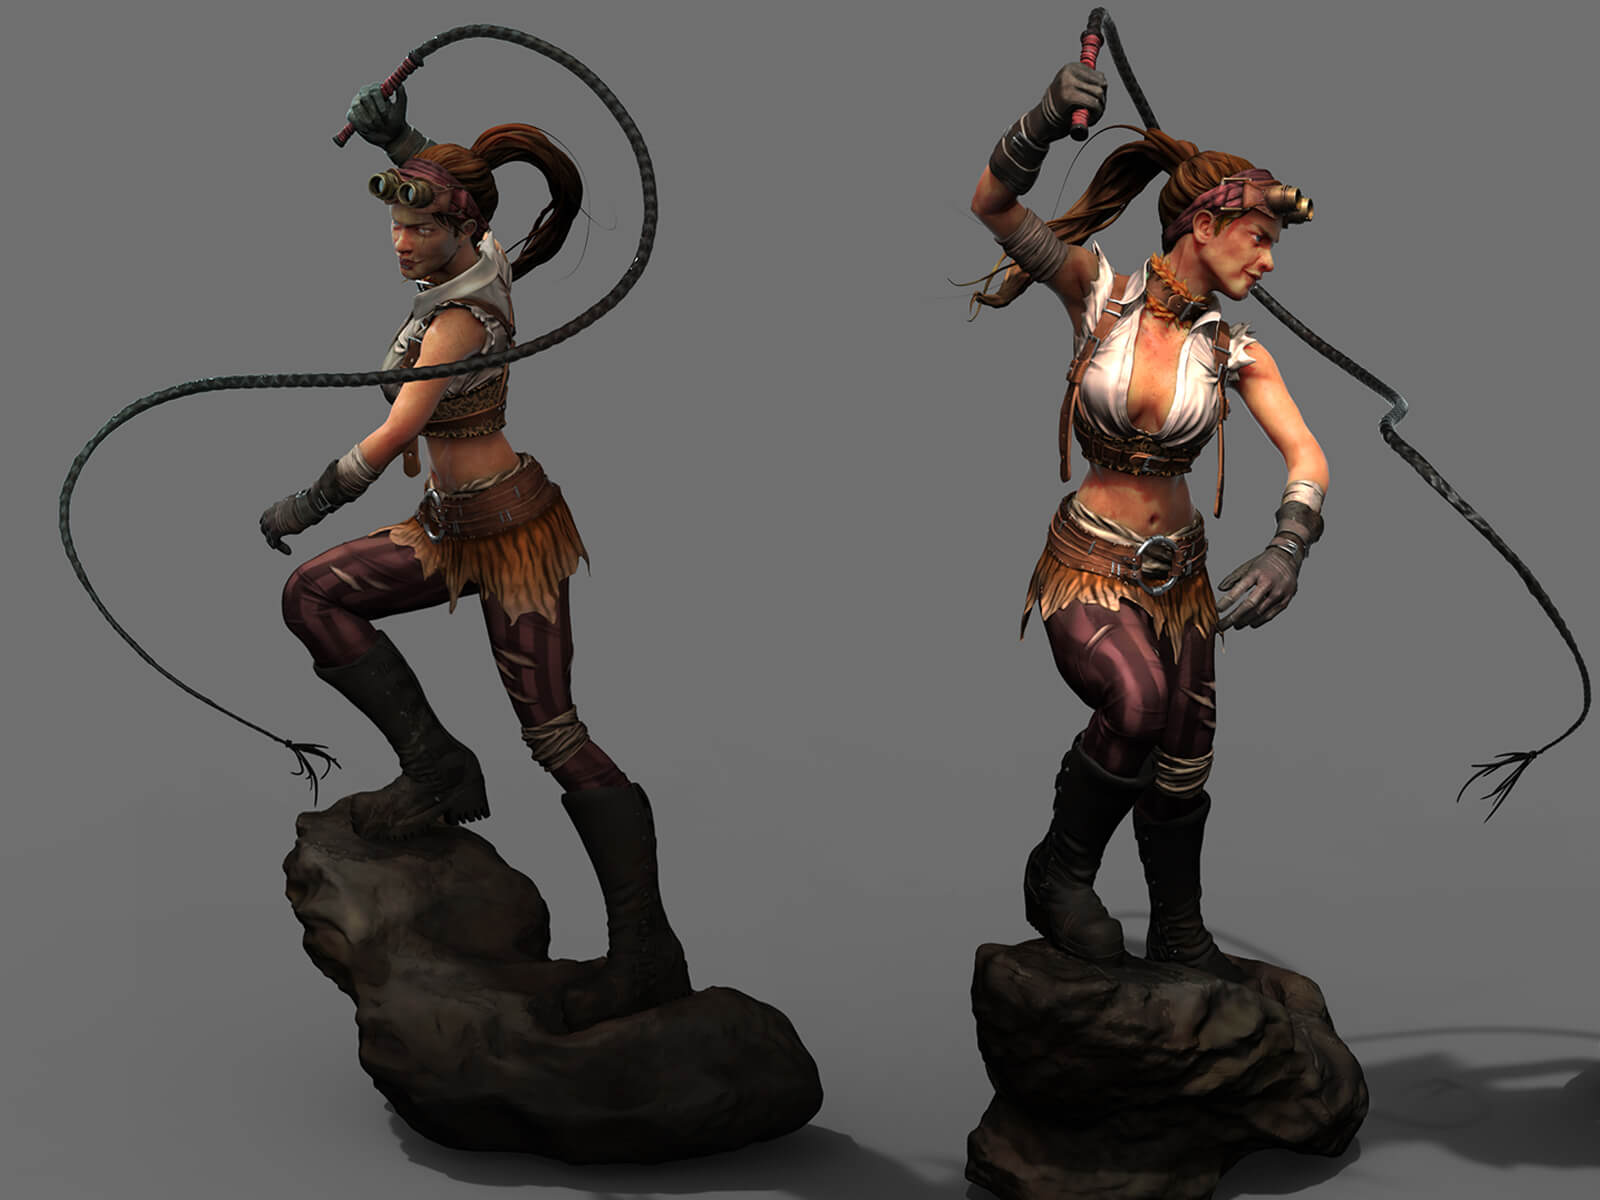 Multiple views of a woman wearing goggles, brandishing a whip